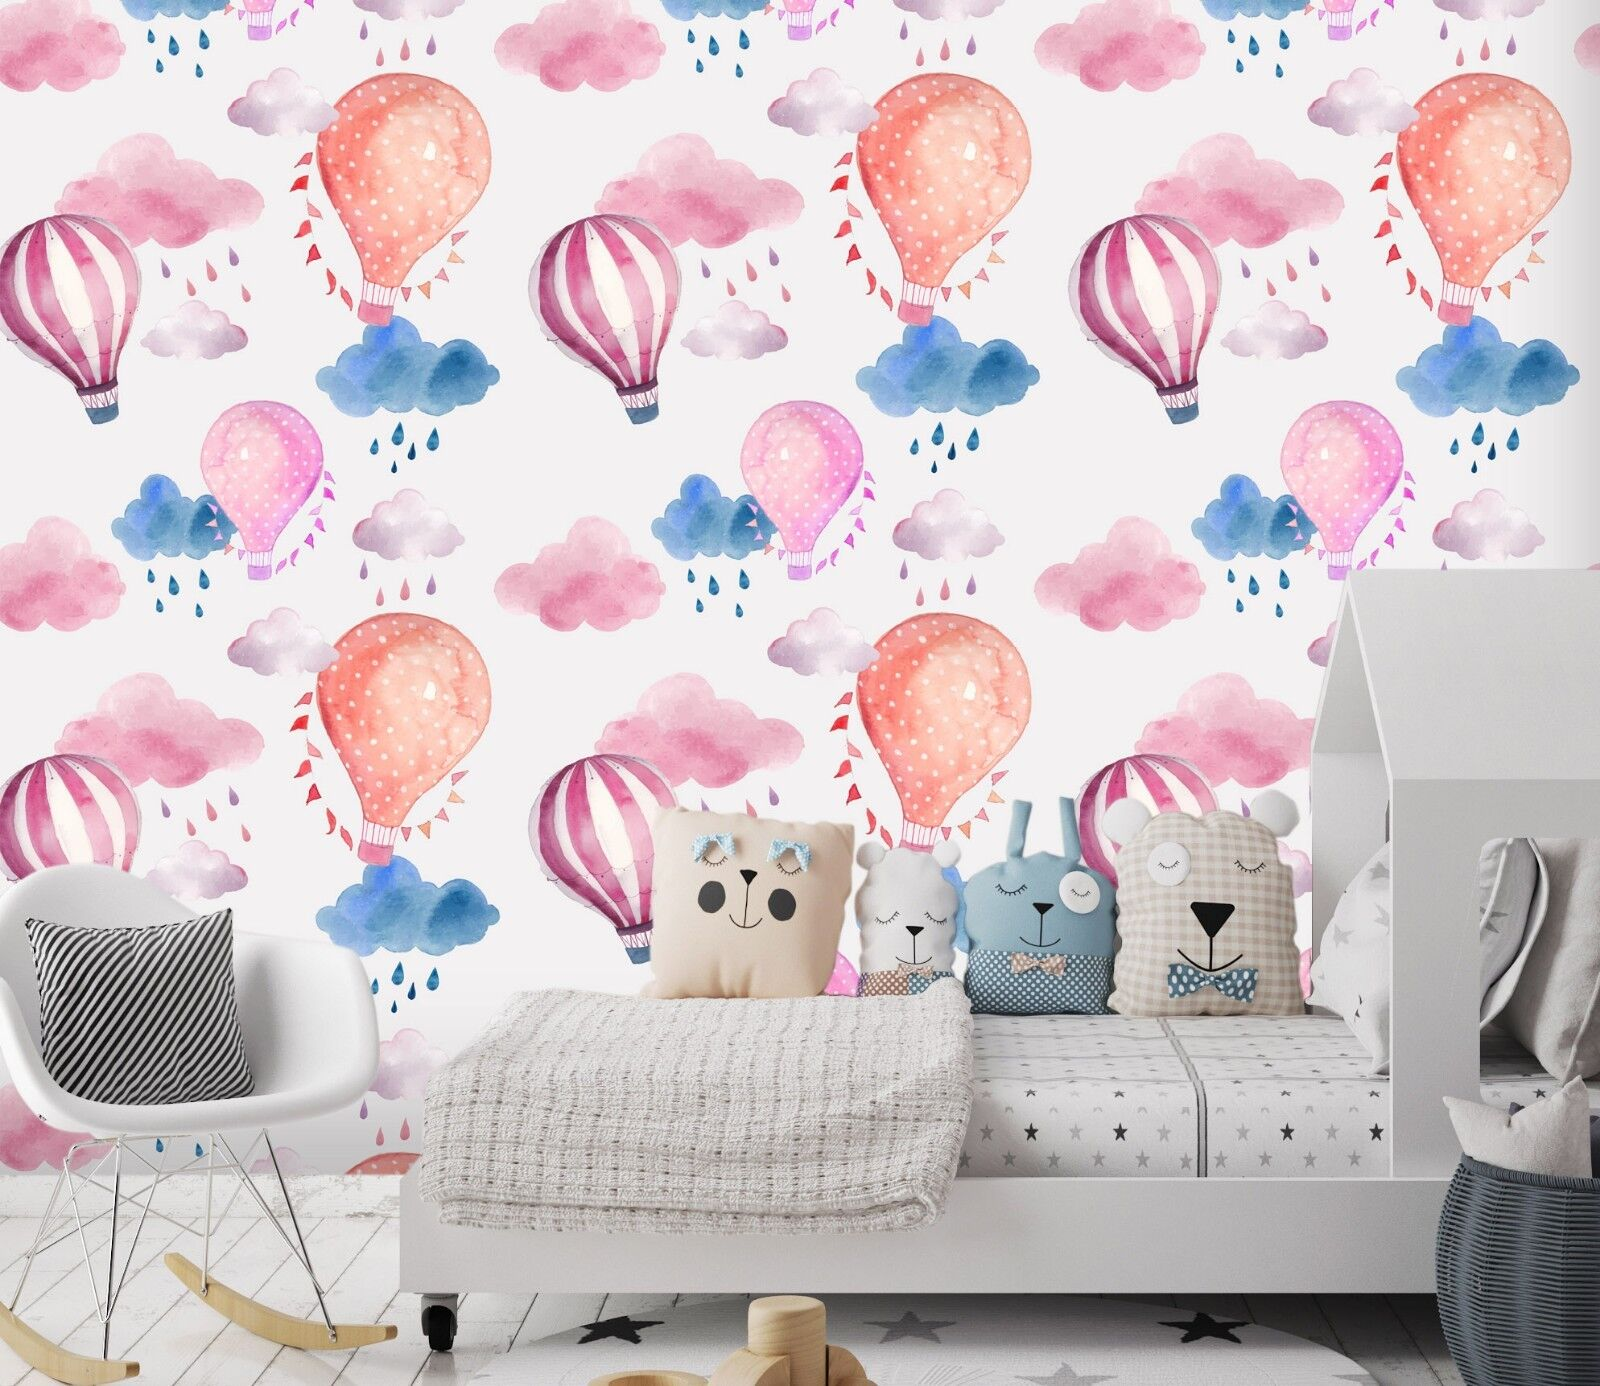 3D Hot Balloon Clouds 455 Wallpaper Murals Wall Print Wallpaper Mural AJ WALL AU